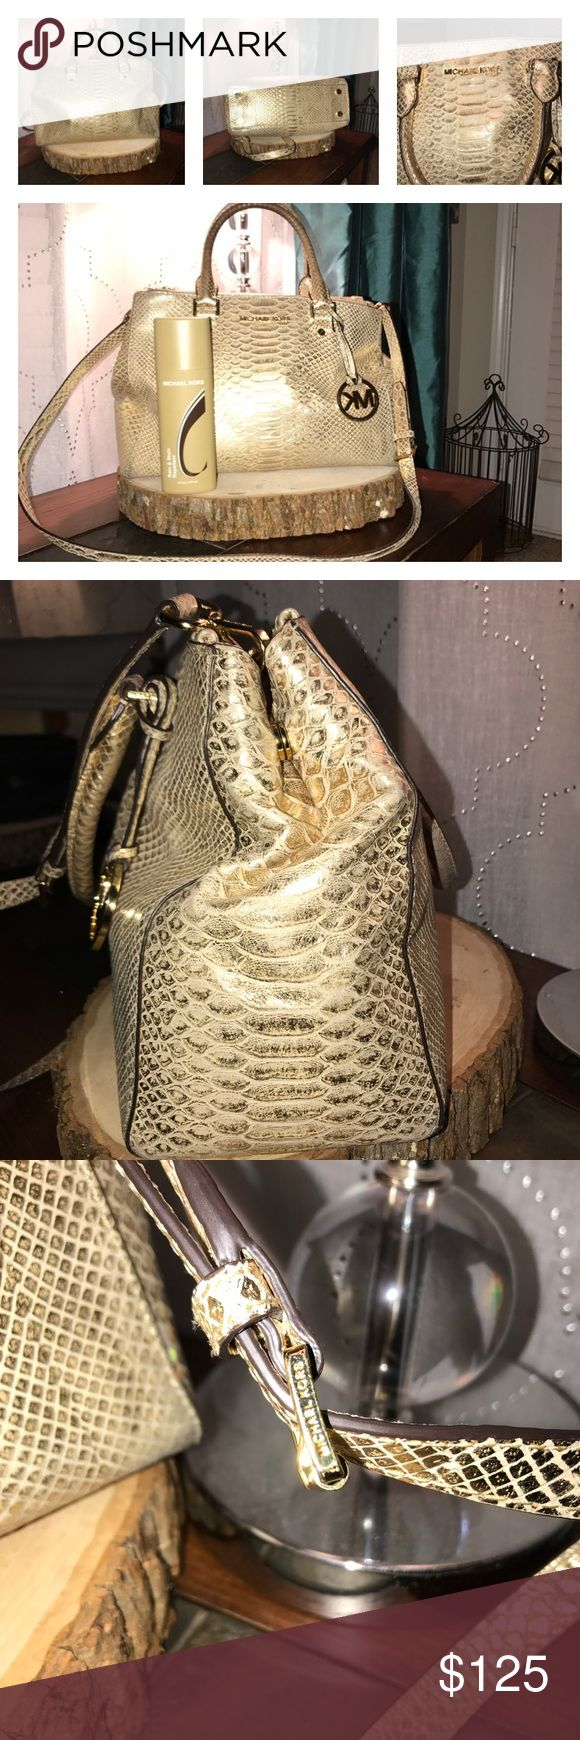 Micheal Kors Gold Metallic Purse Used gold metallic authentic MK purse purchased from Michael Kors store. MK rain & stain repellent spray included with purchase of this purse. Handles of purse and bottom corner of purse shows visible wear. Inside of purse has some ink stains. Michael Kors Bags Shoulder Bags